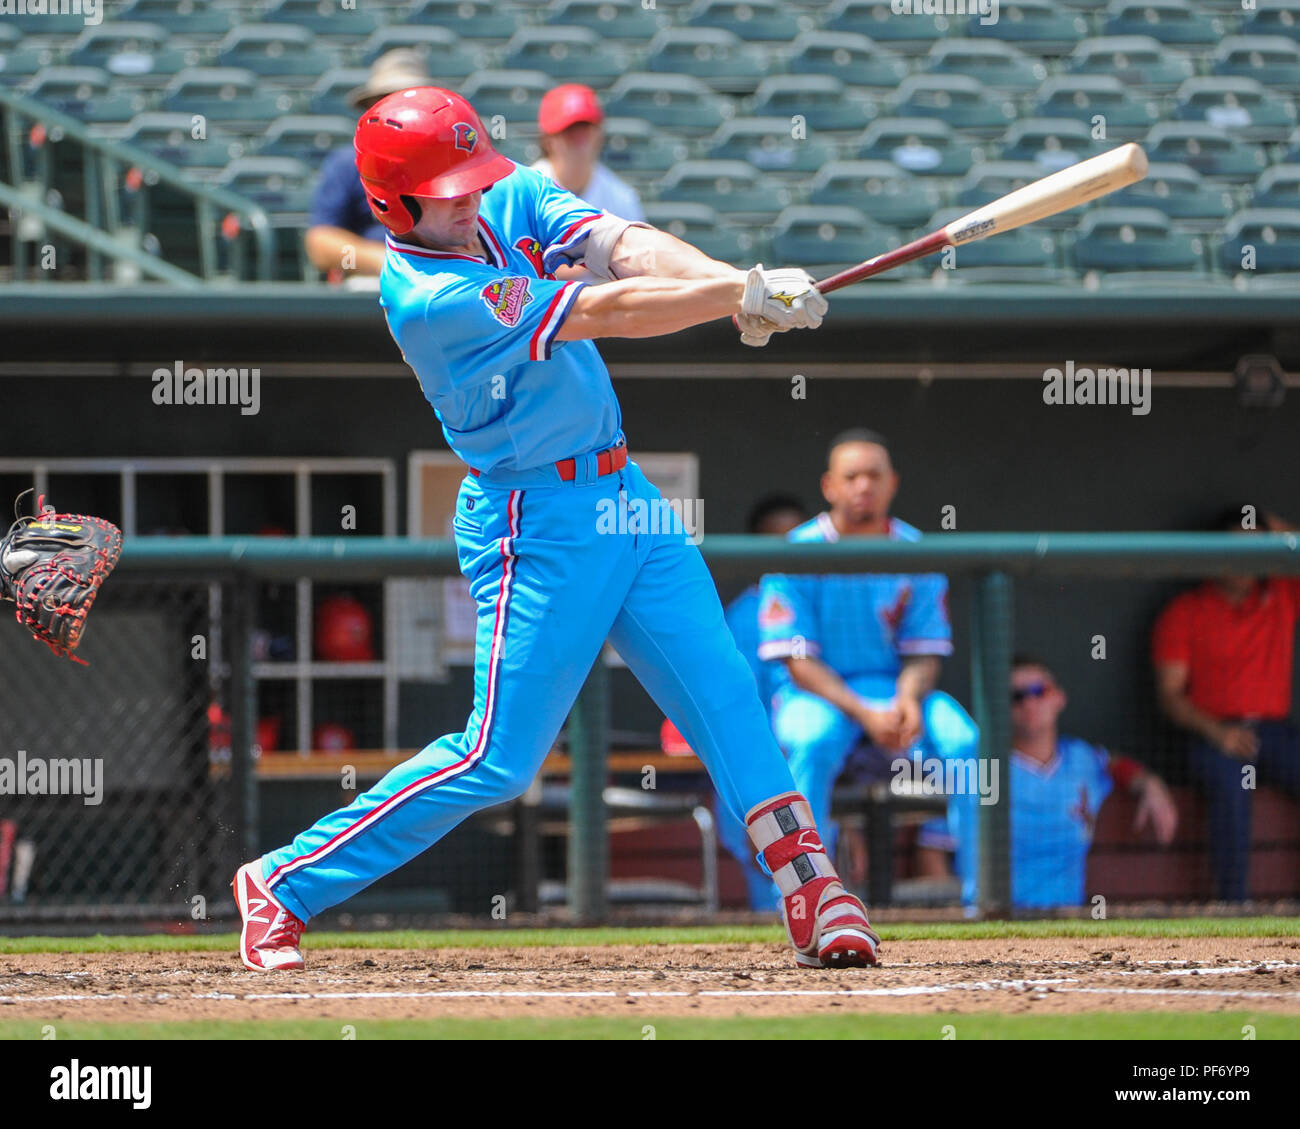 August 19, 2018: Memphis outfielder, Lane Thomas (38), at bat during the Pacific Coast League Triple-A baseball game at Auto Zone Park in Memphis, TN. Round Rock defeated Memphis, 3 - 1. Kevin Langley/CSM - Stock Image